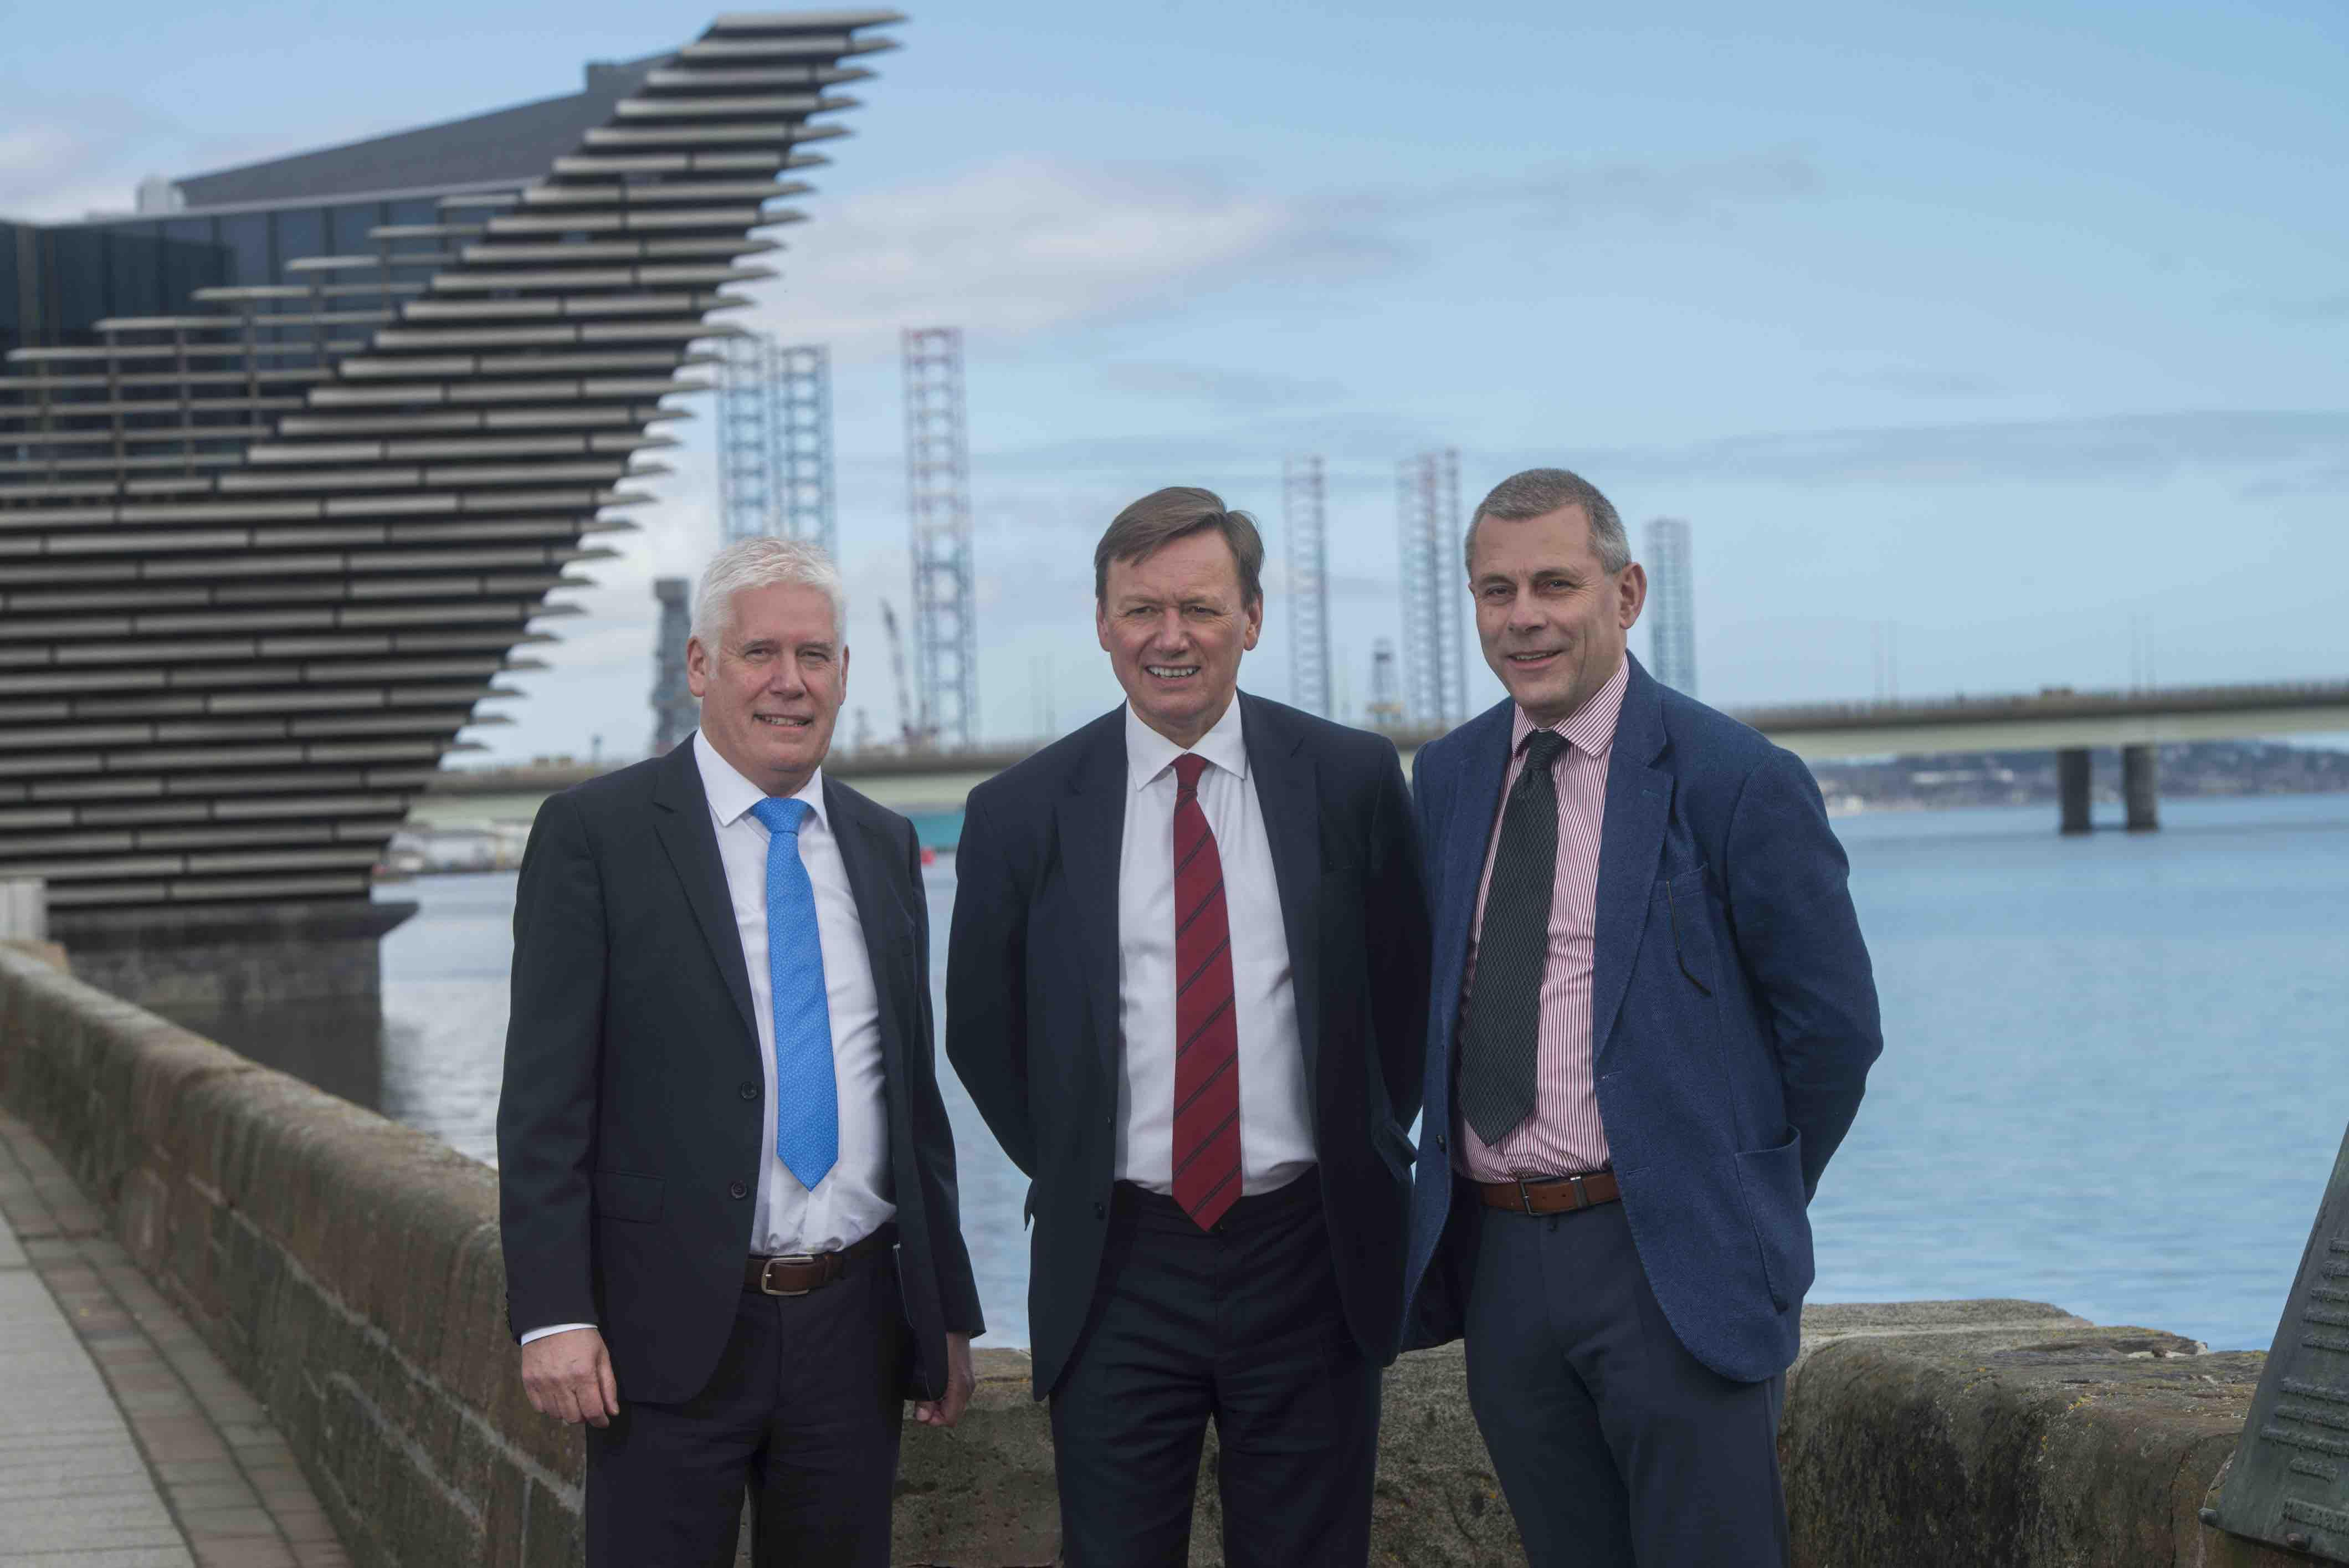 From left to right:  Callum Falconer, ceo of Dundeecom; Charles Hammond, group ceo of Forth Ports; Bill Cattanach, head of supply chain at Oil and Gas Authority.